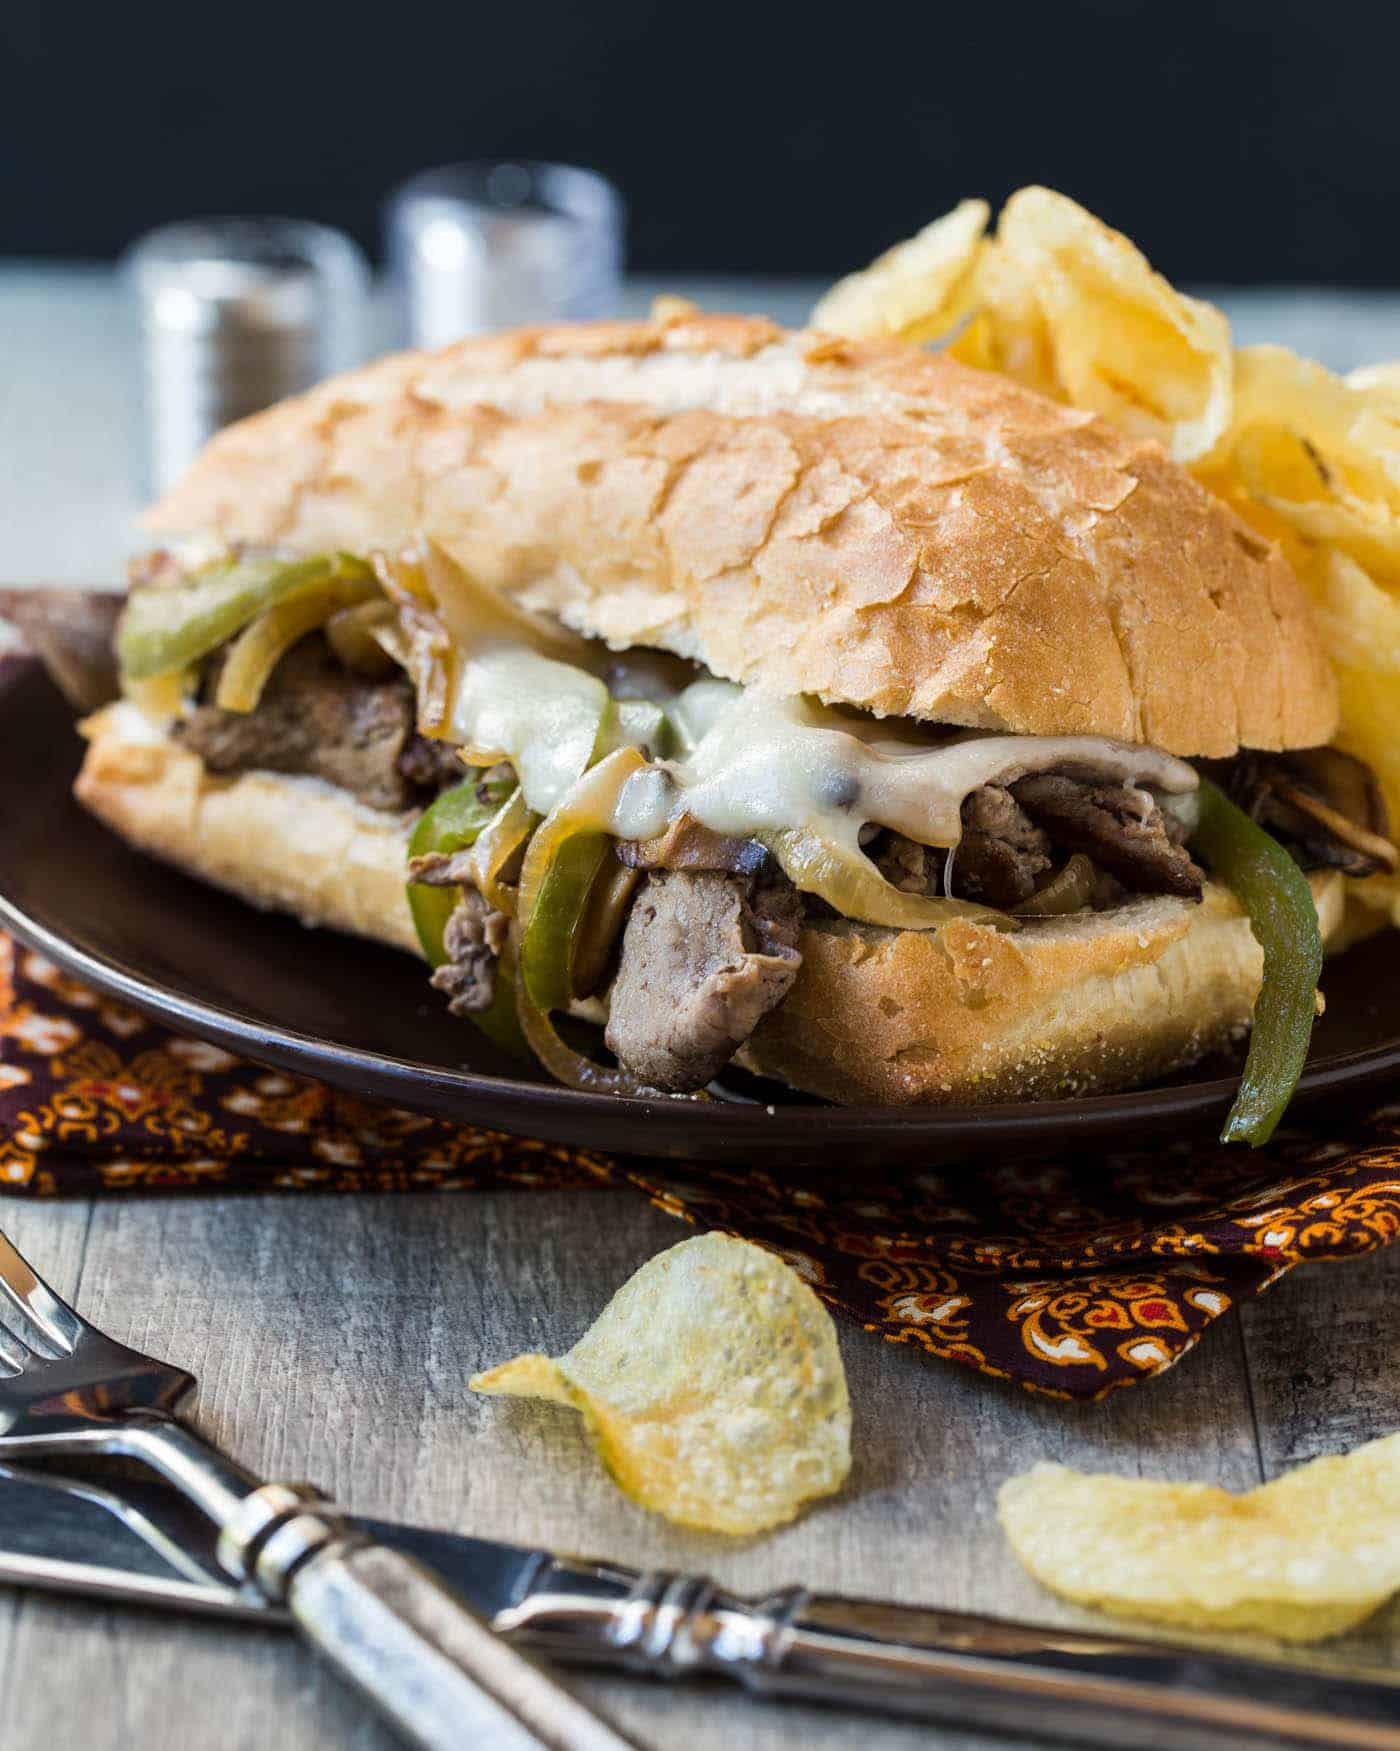 Nothing says game day like Cheesesteak Sandwiches. Add this recipe for melty, gooey Cheesesteaks to your next tailgating menu.